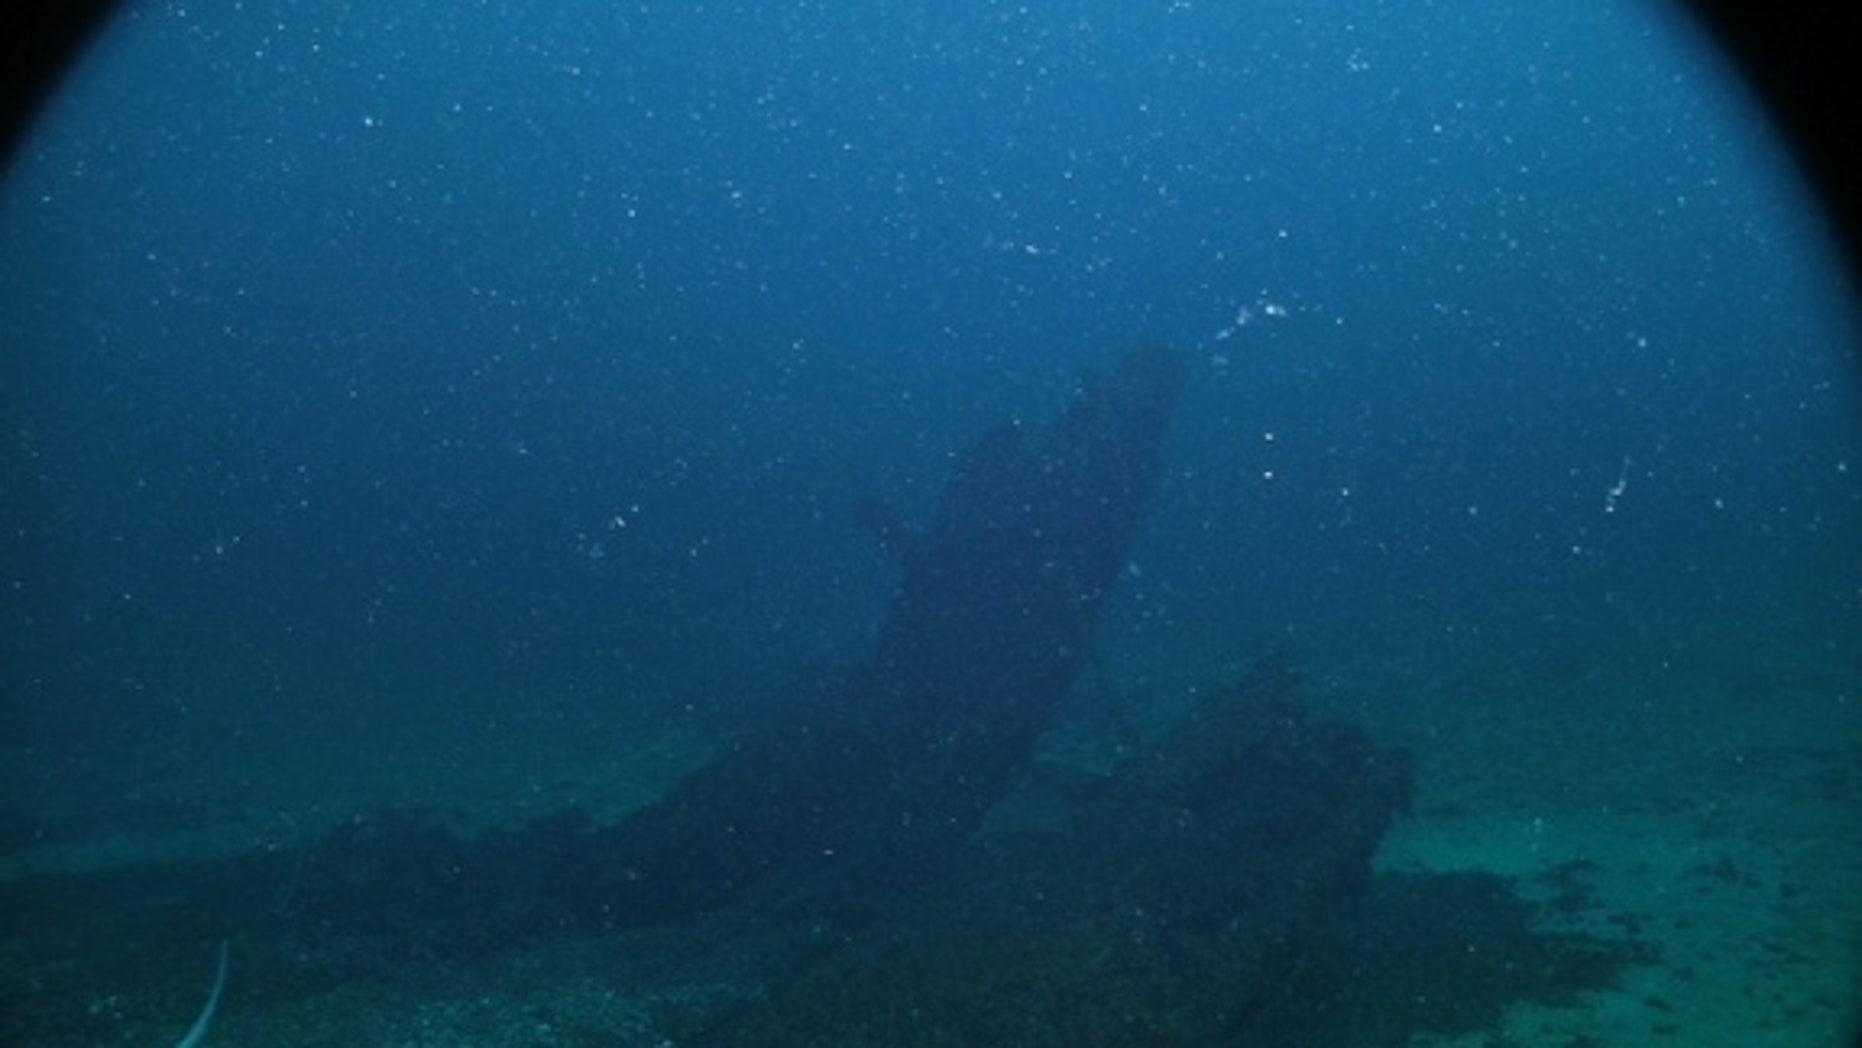 Using sonar, two treasure hunters found the remains of a shipwreck in Lake Michigan. Despite photos from several underwater dives, it's still unclear whether the wreck is the 1679 French Griffin.